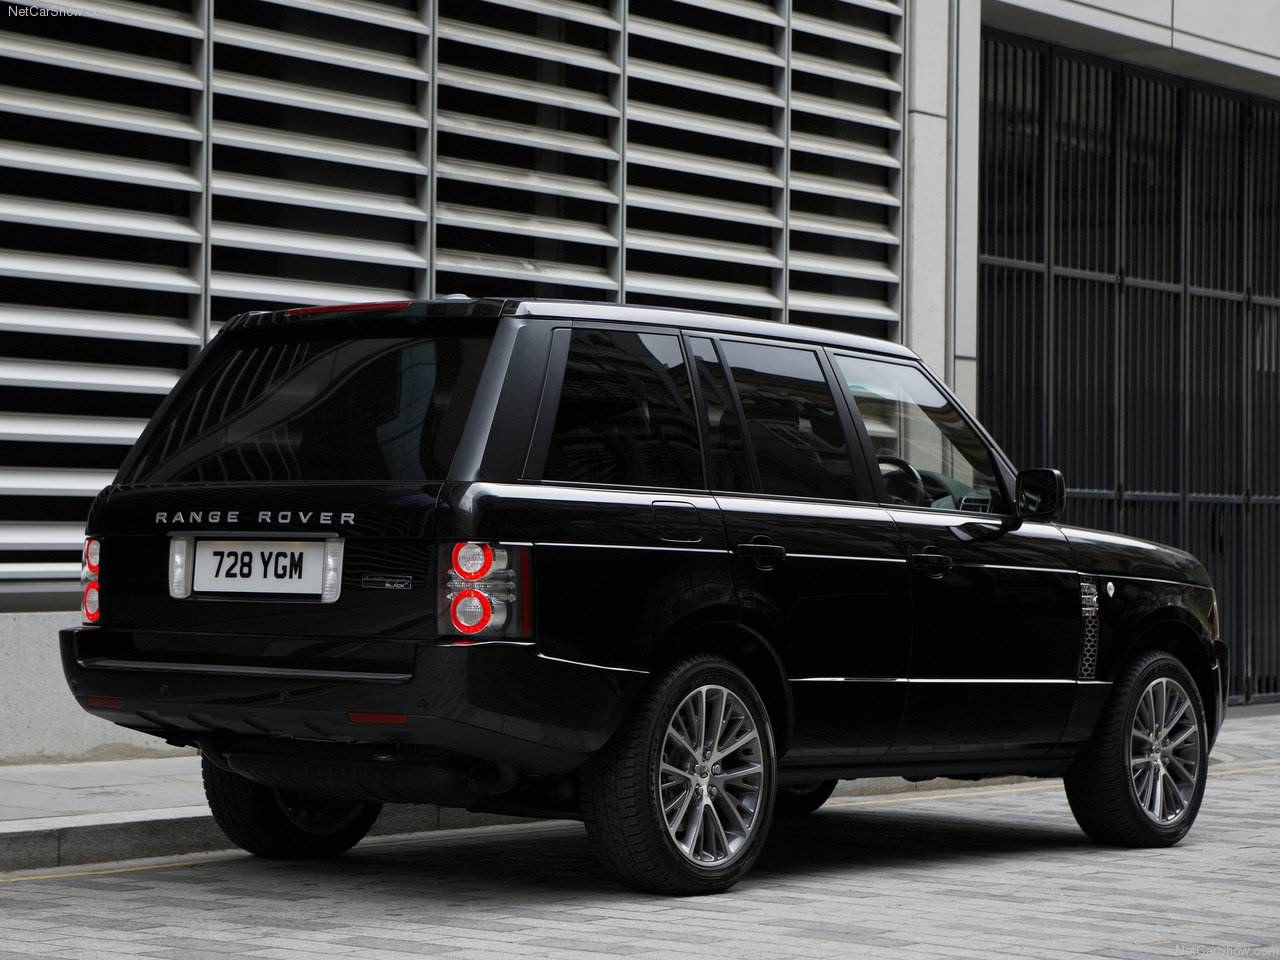 2011 land rover range rover autobiography black. Black Bedroom Furniture Sets. Home Design Ideas